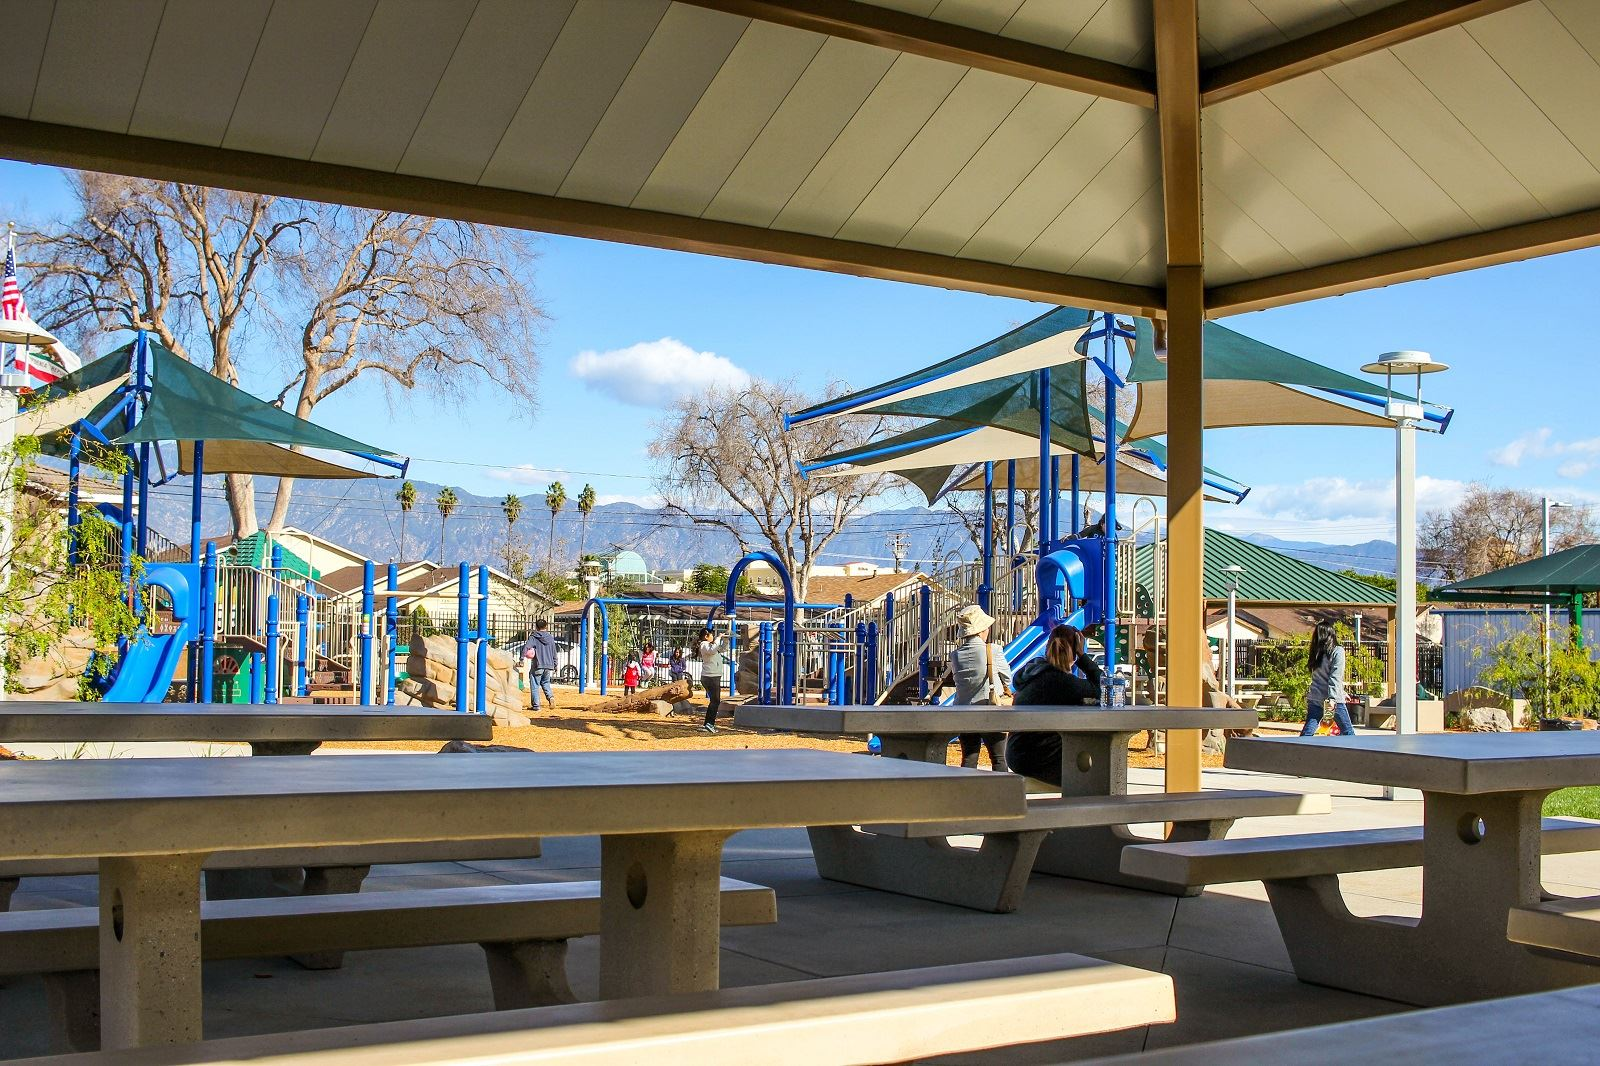 Marshall Park picnic areas now available for reservations